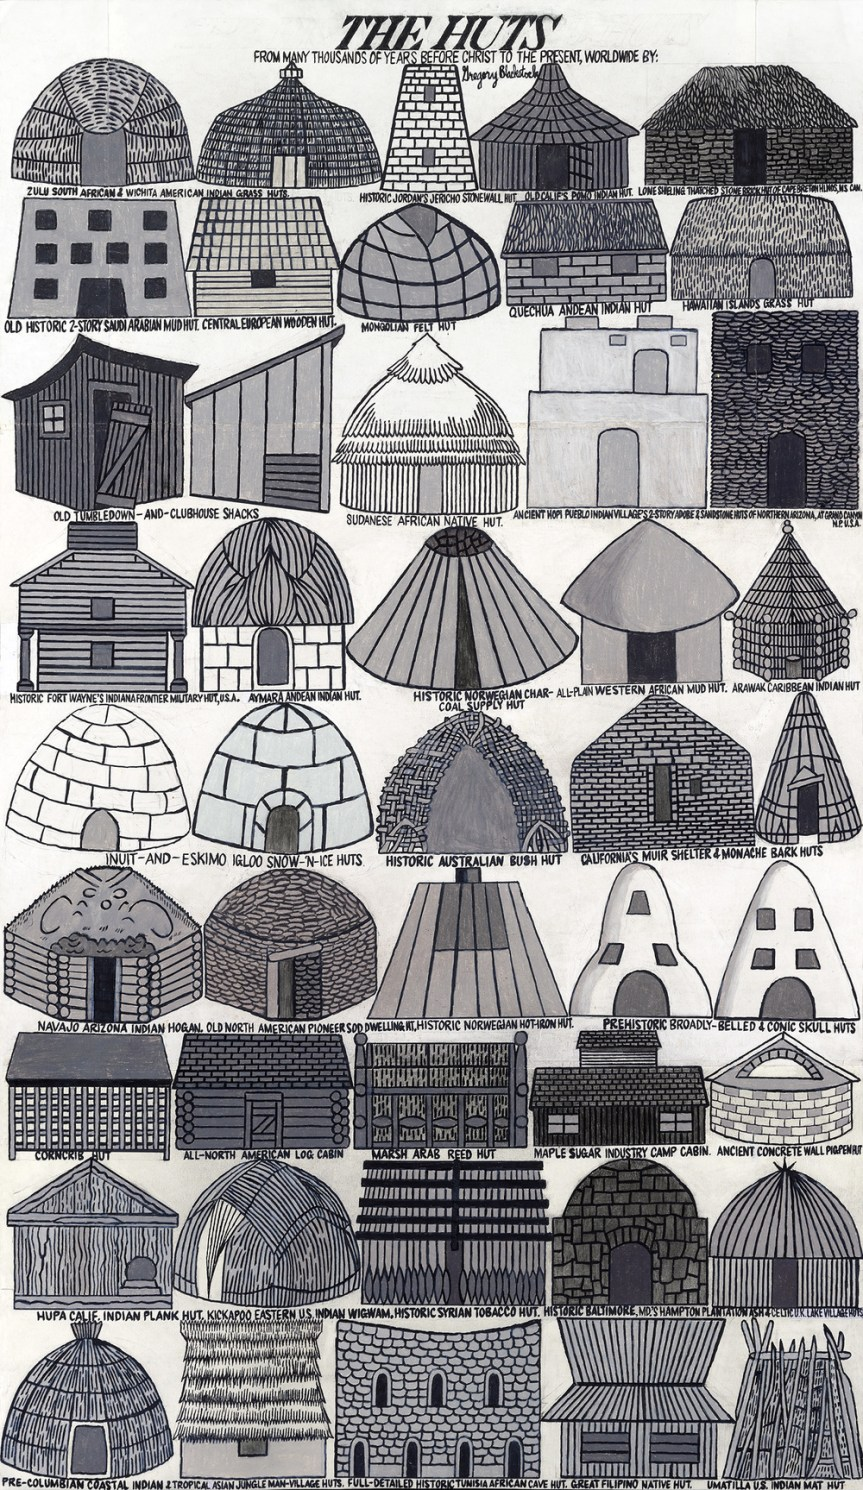 """Gregory Blackstock, The Huts, 28.5"""" x 45 3/4"""", 2013, graphite, crayon, ink, marker on paper"""